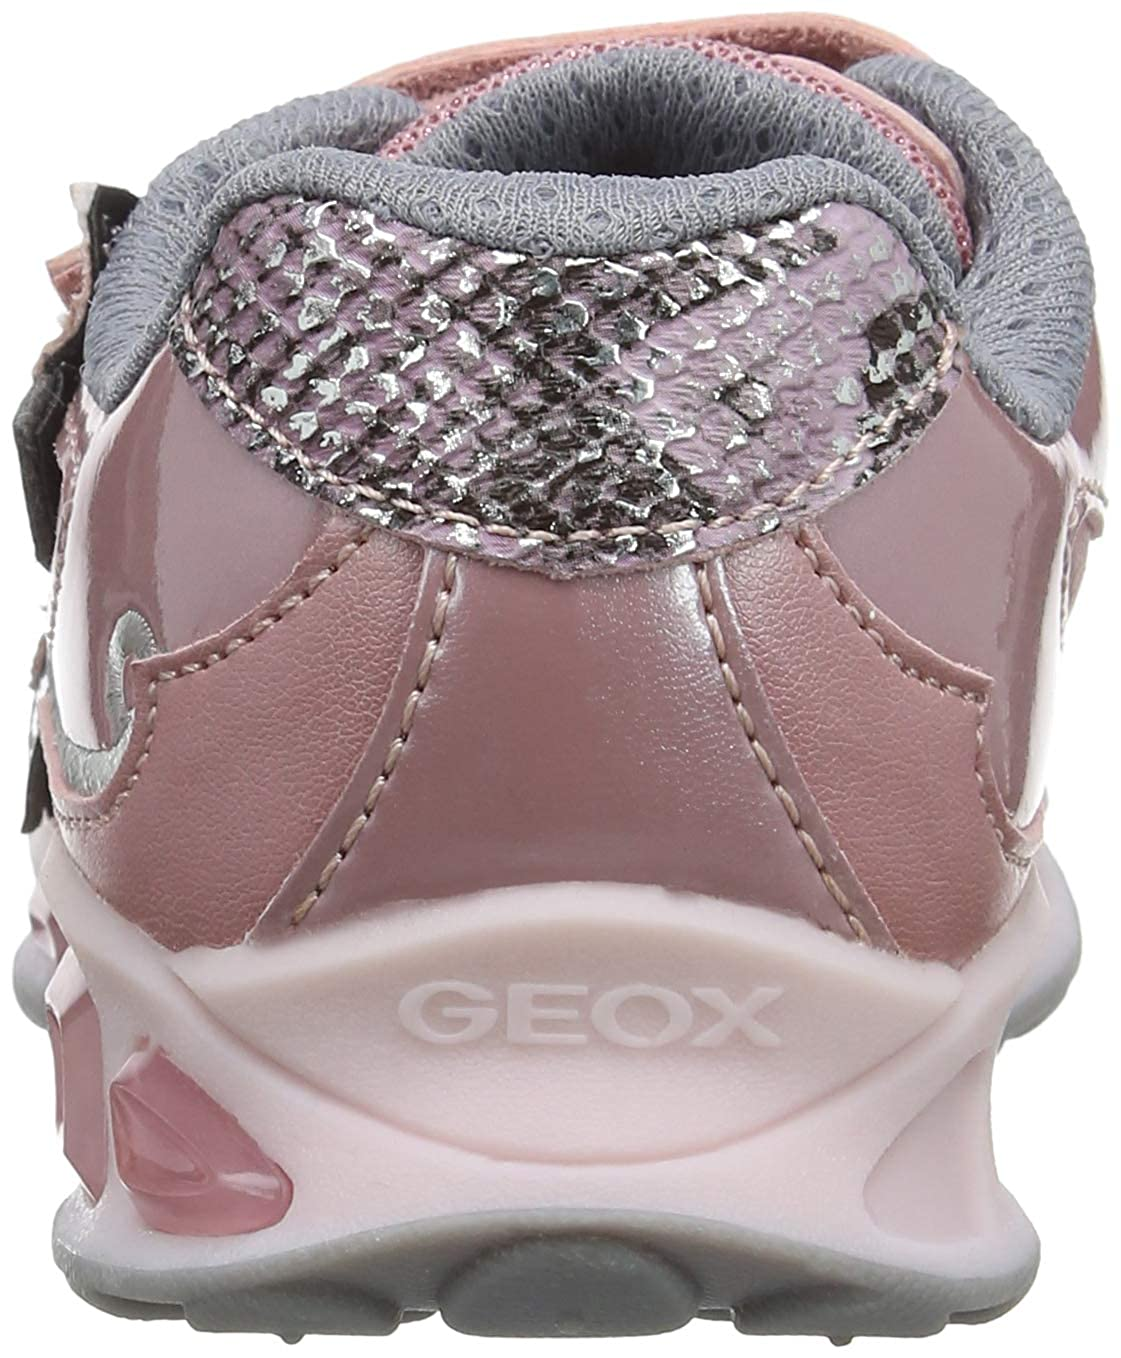 Geox J Shuttle A Baskets Basses Fille